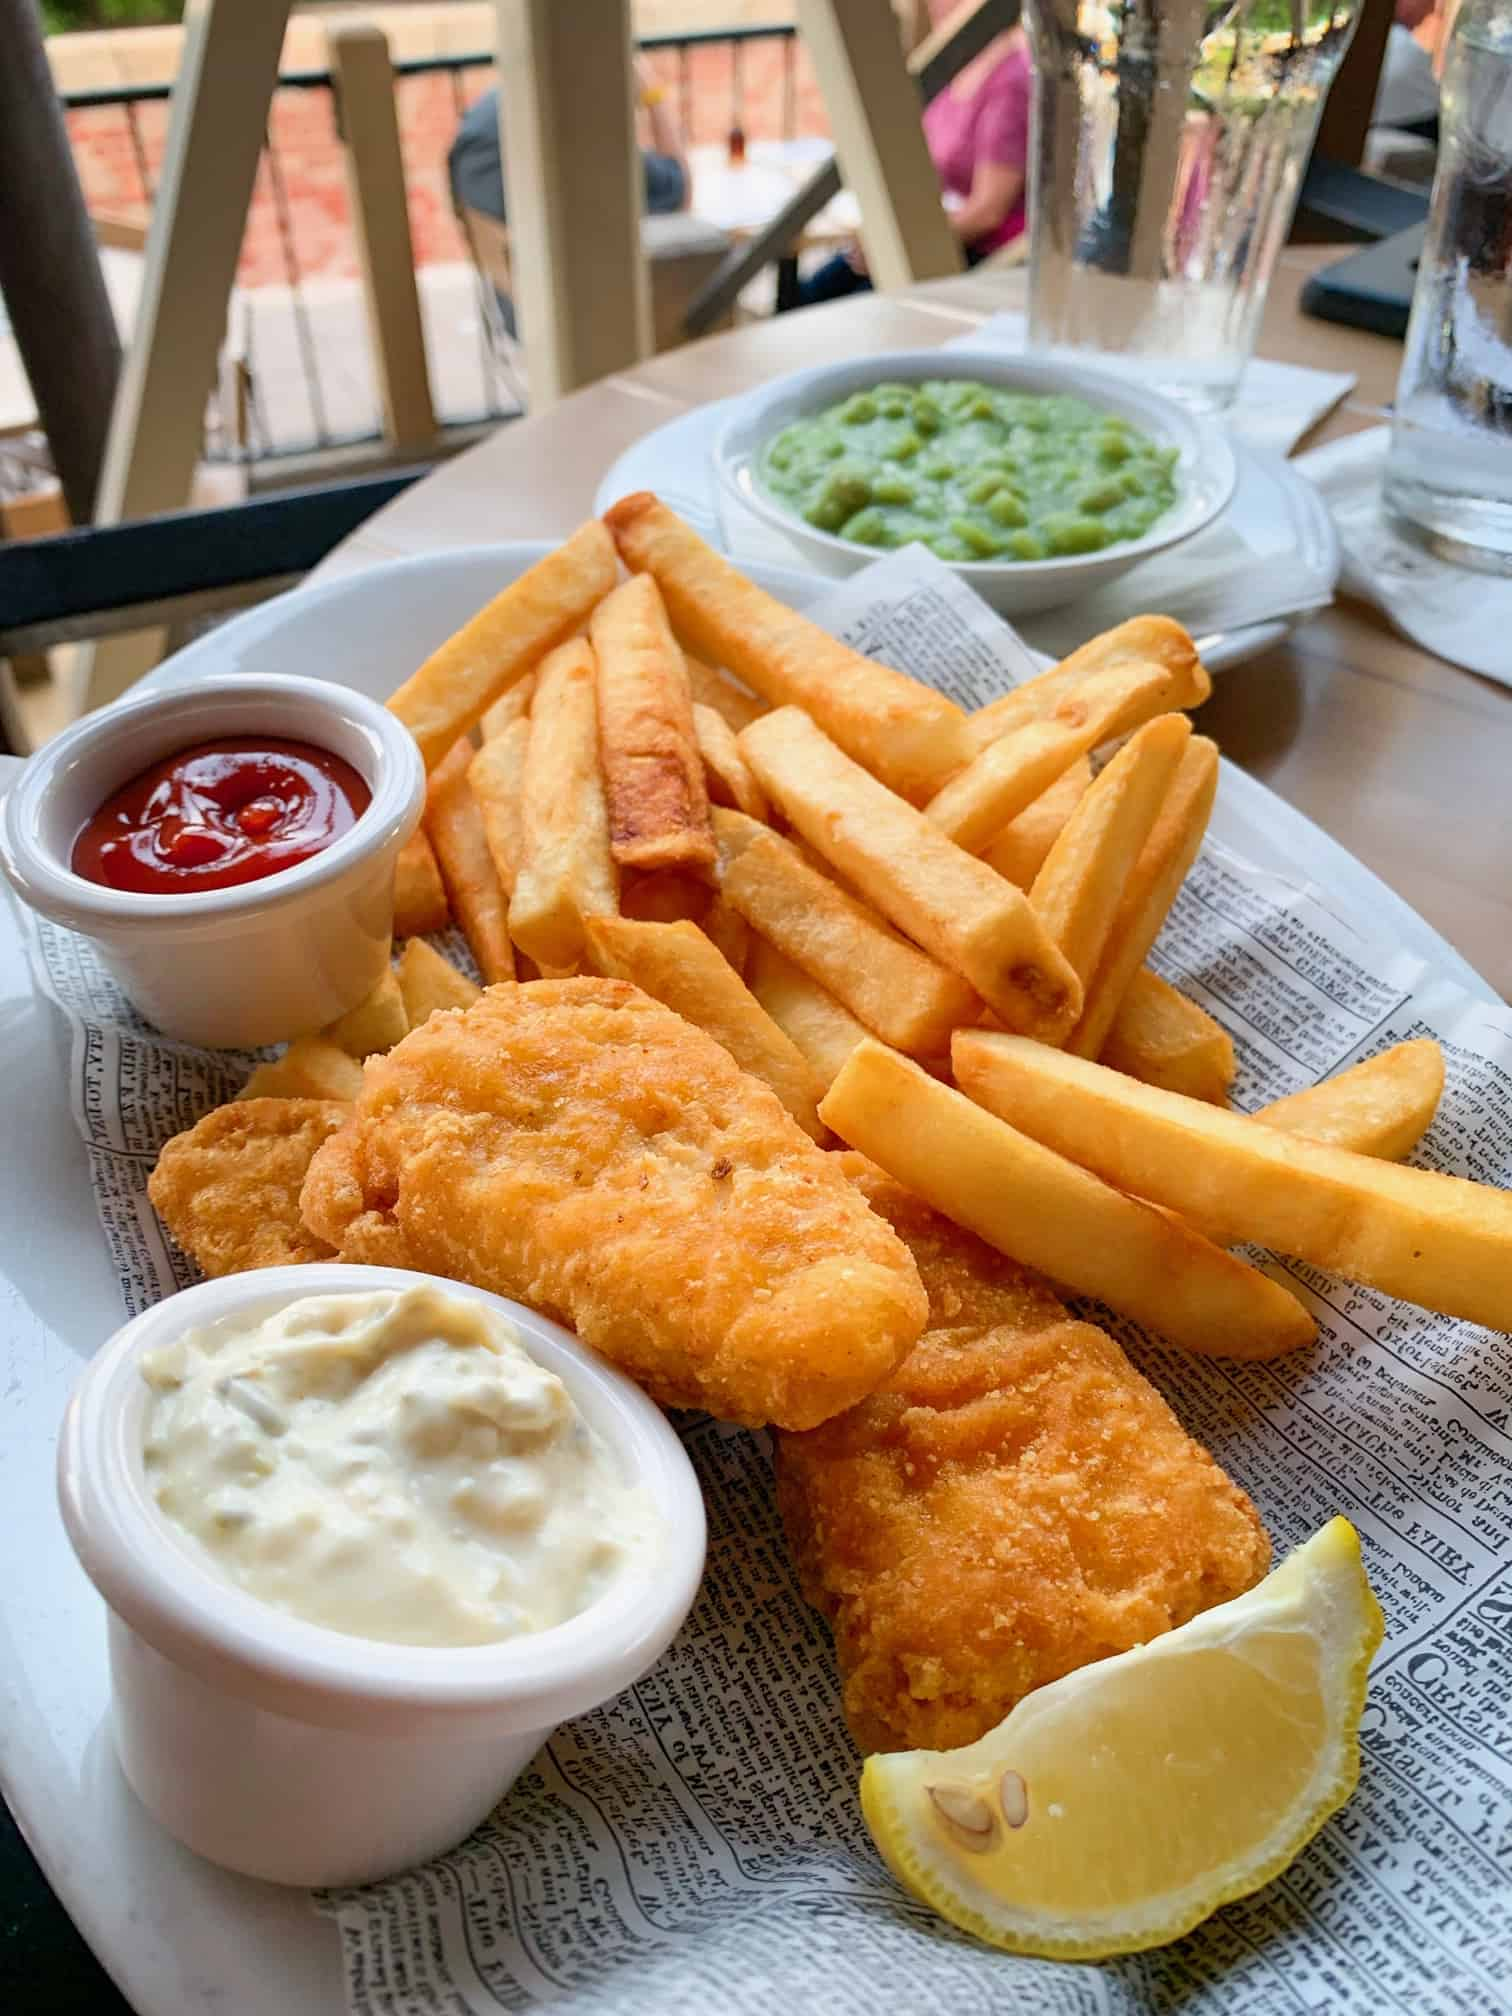 Vegan fish and chips at Epcot are a must when planning a trip to Disney